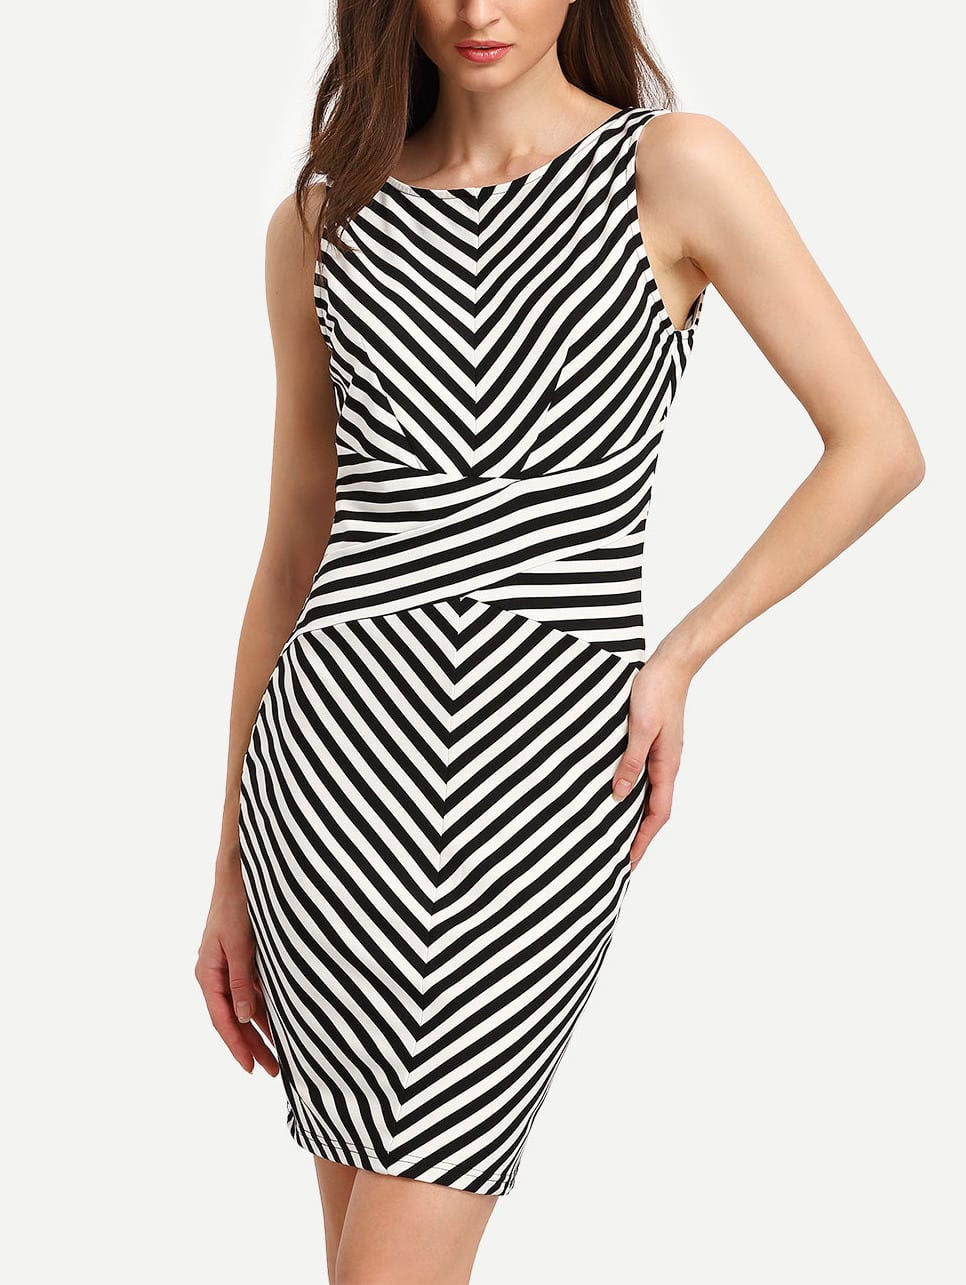 List india queen bodycon dress what does it mean urdu city jackets new zealand